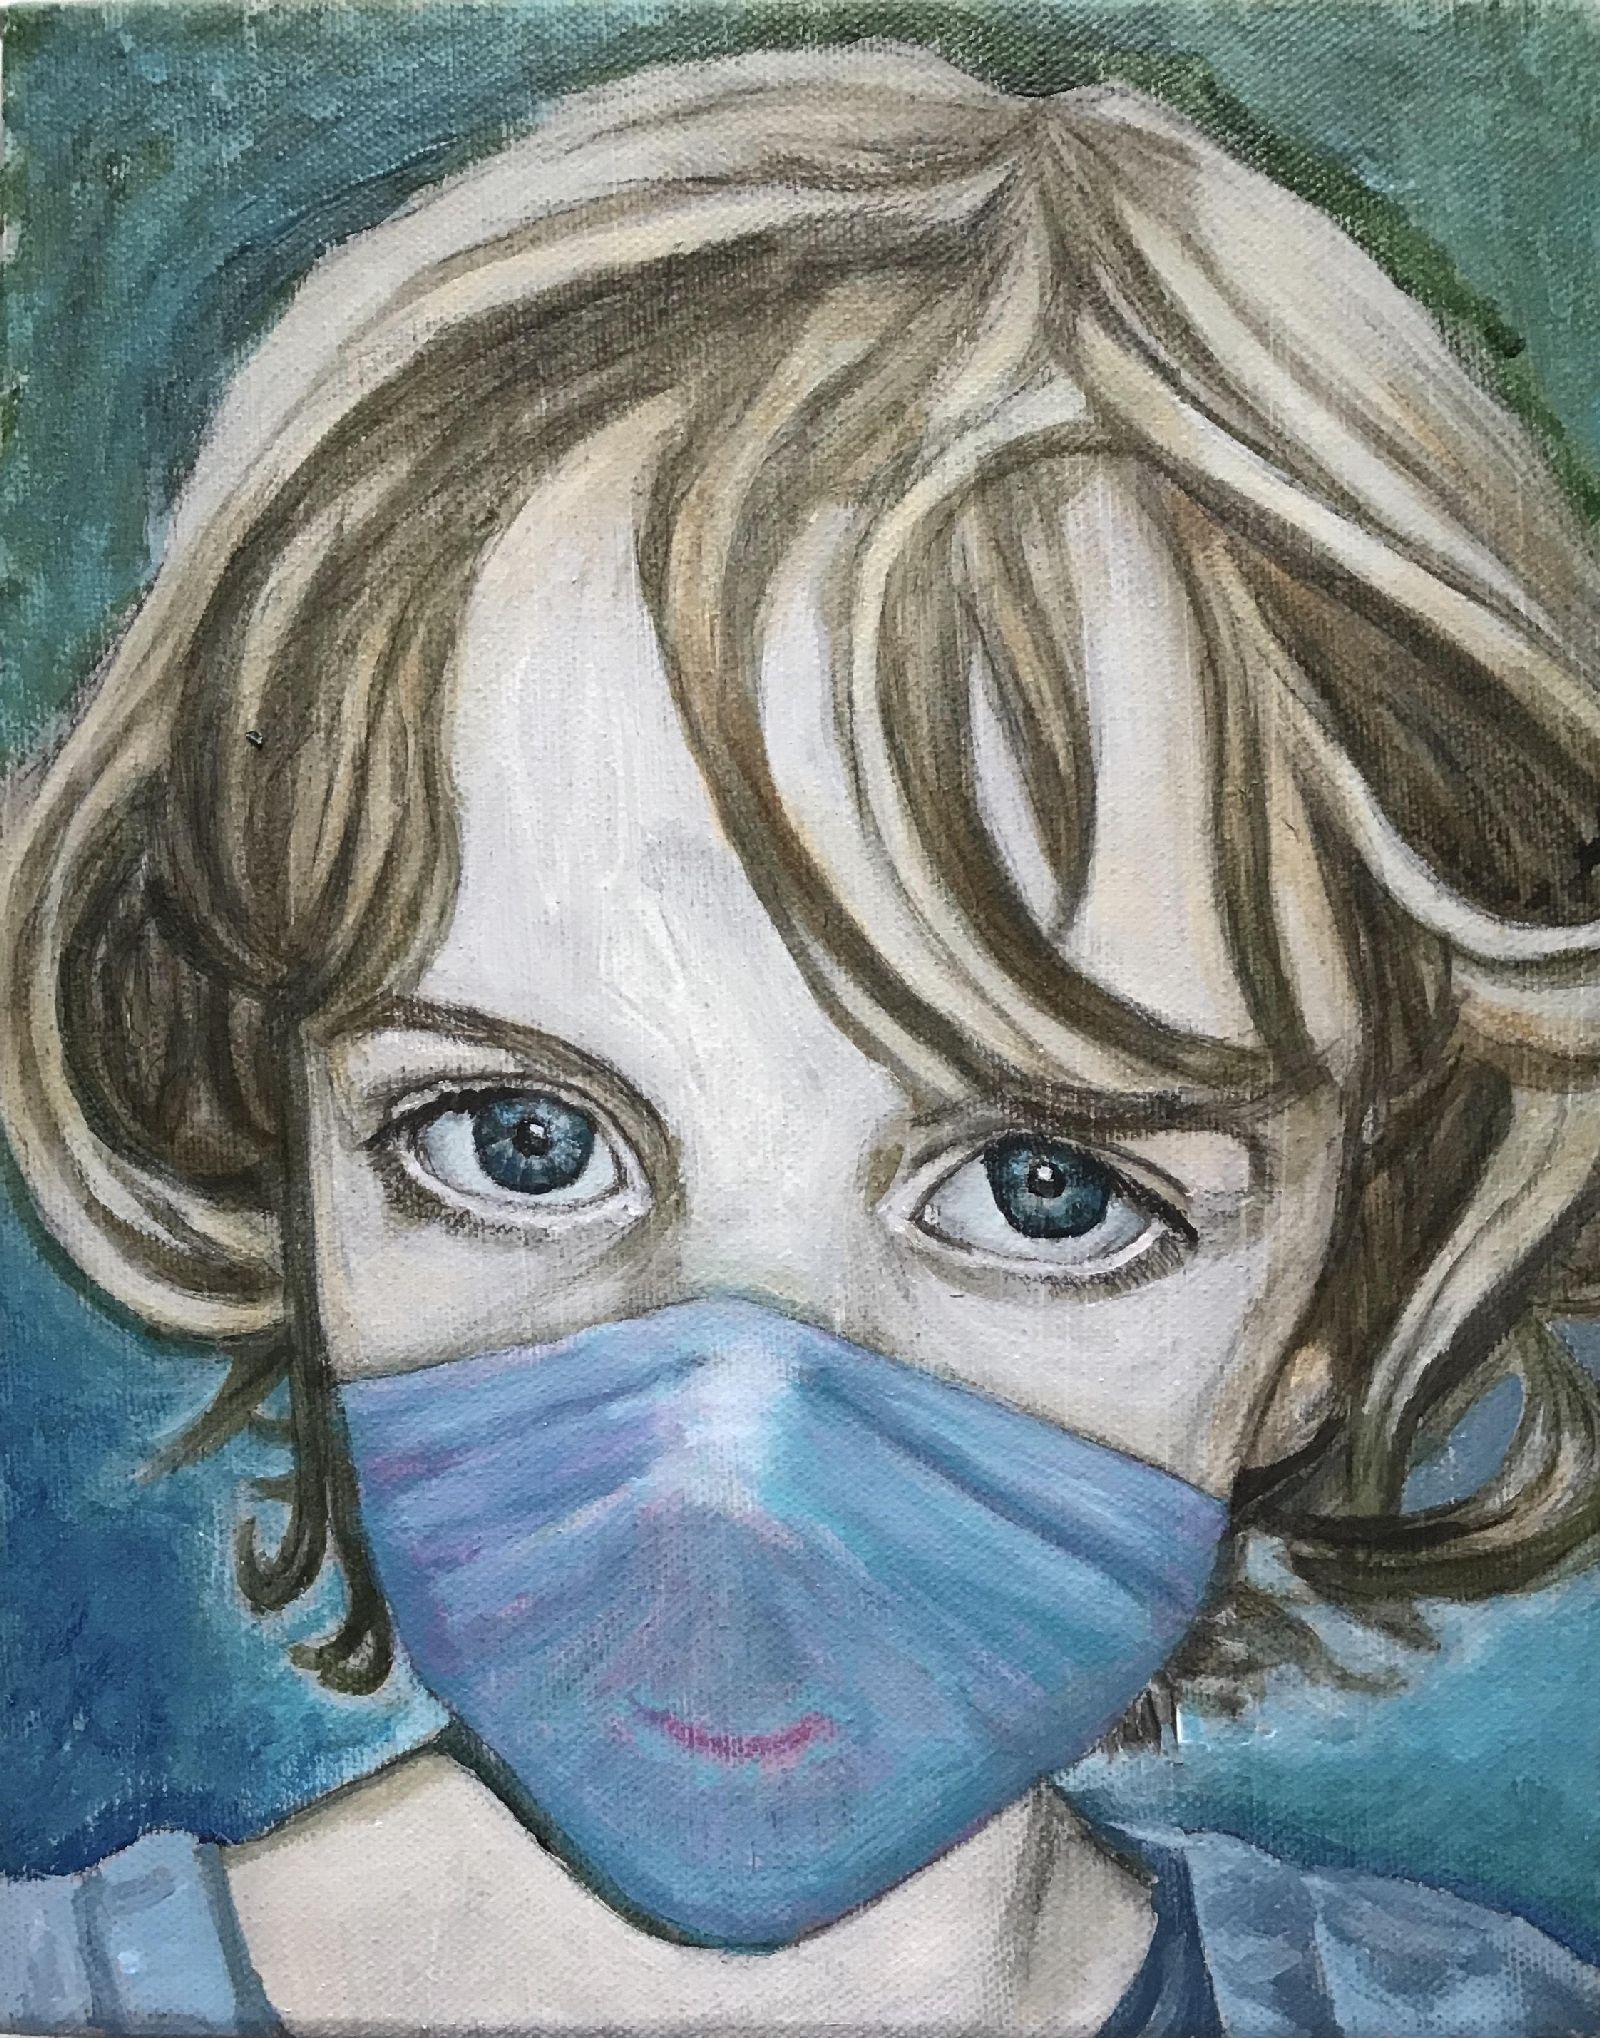 'Girl with a face mask' by Christopher Banahan